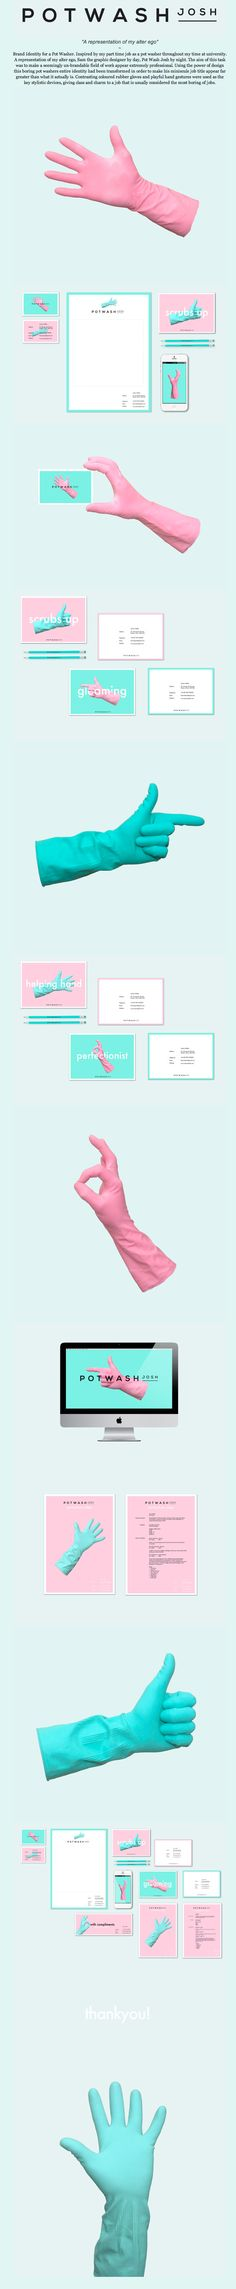 http://www.behance.net/gallery/Pot-Wash-Josh-Brand-Identity-/8738167